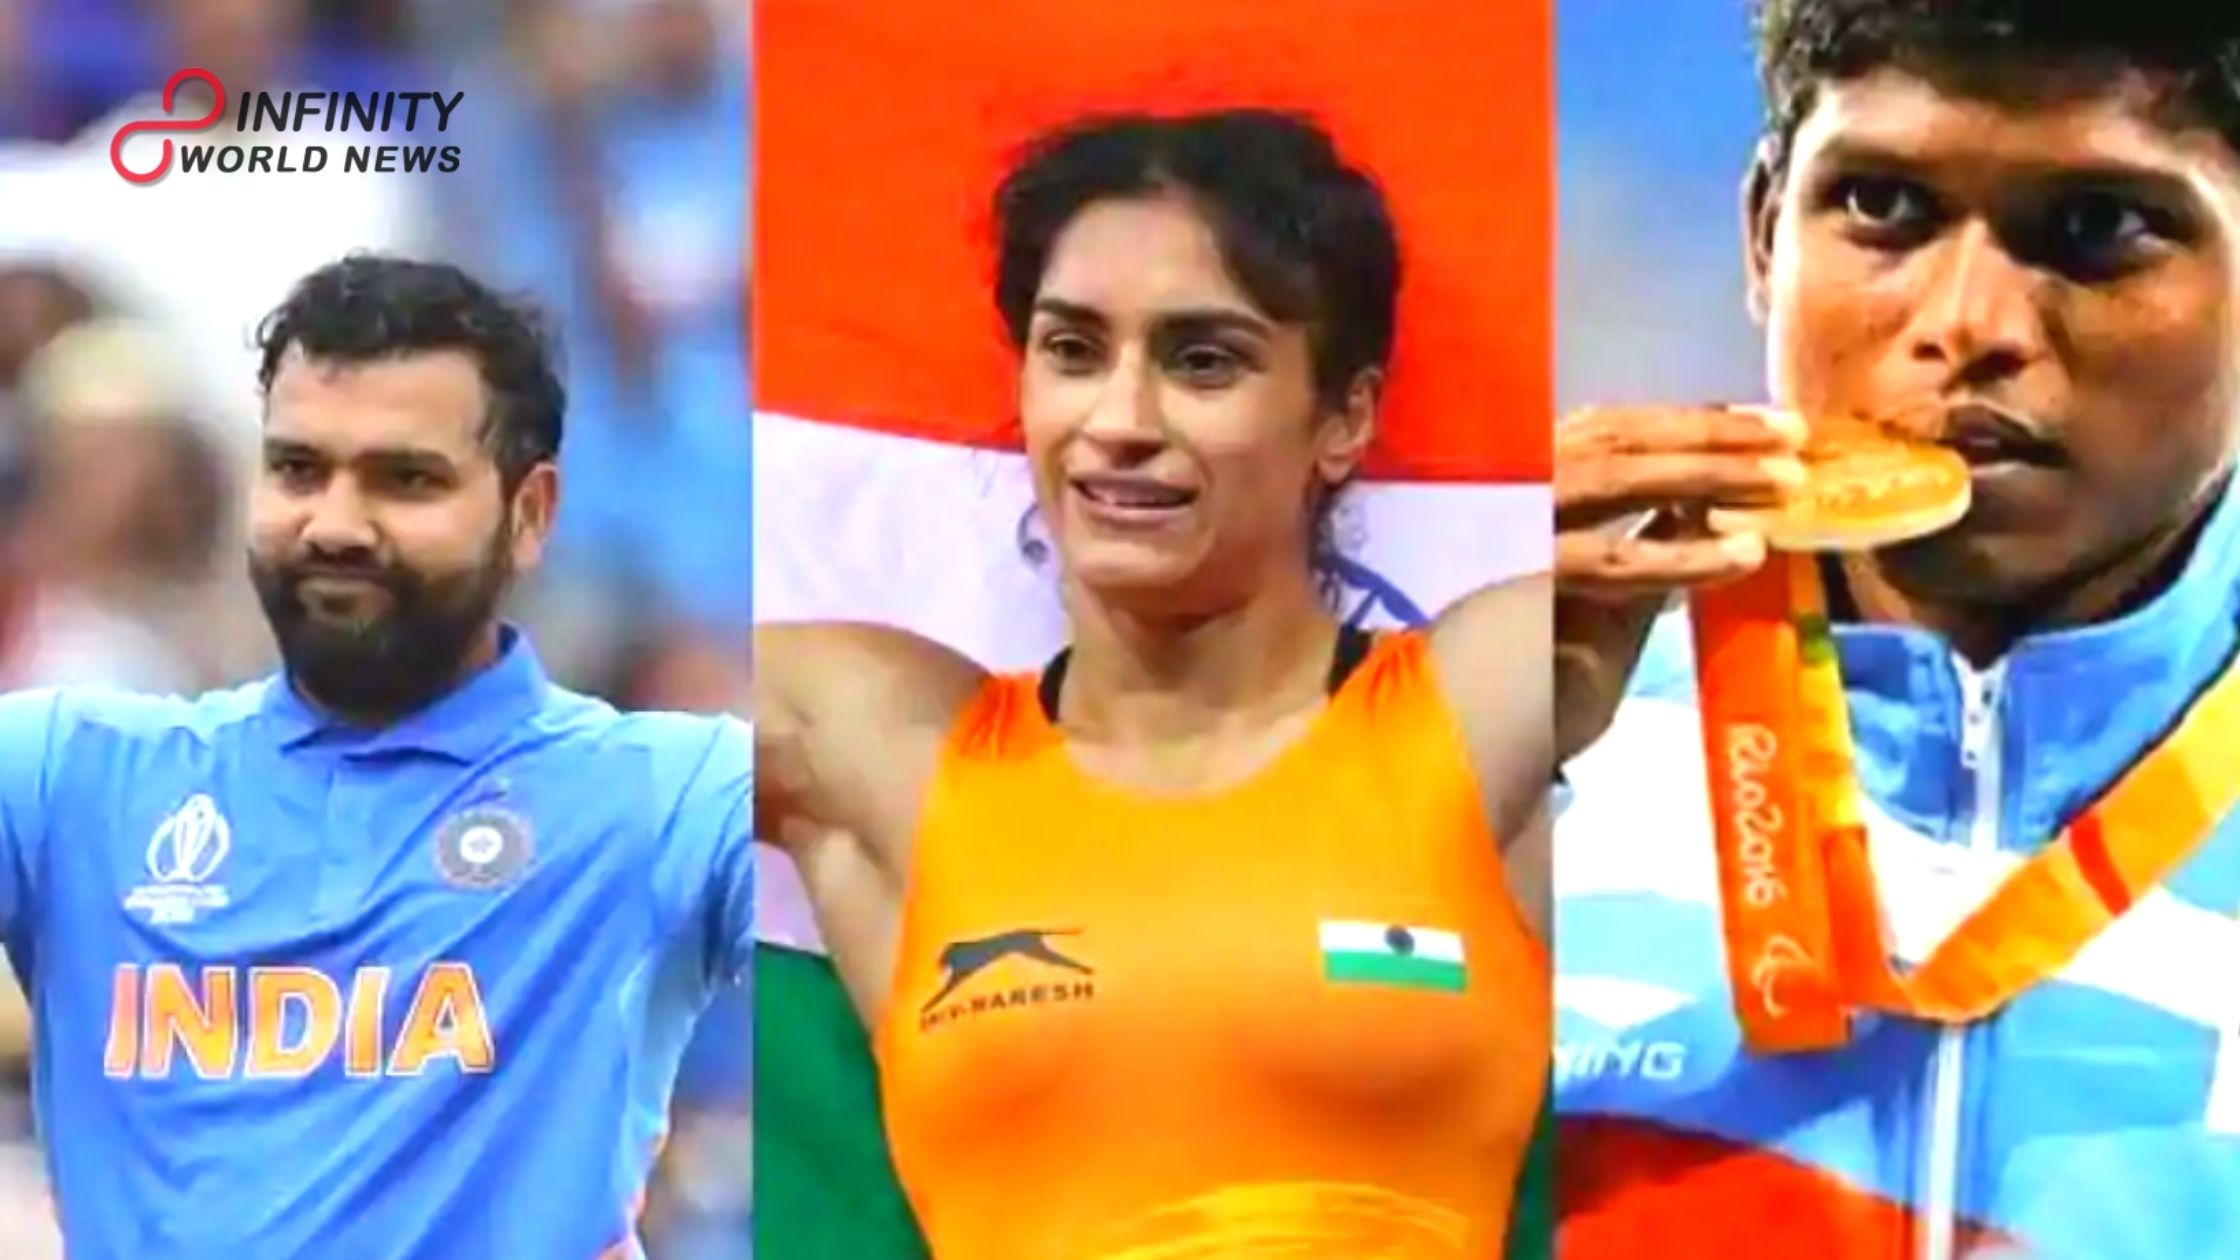 National Sports Awards 2020_ Prize cash for all honour classes to be expanded generously, state reports (1)